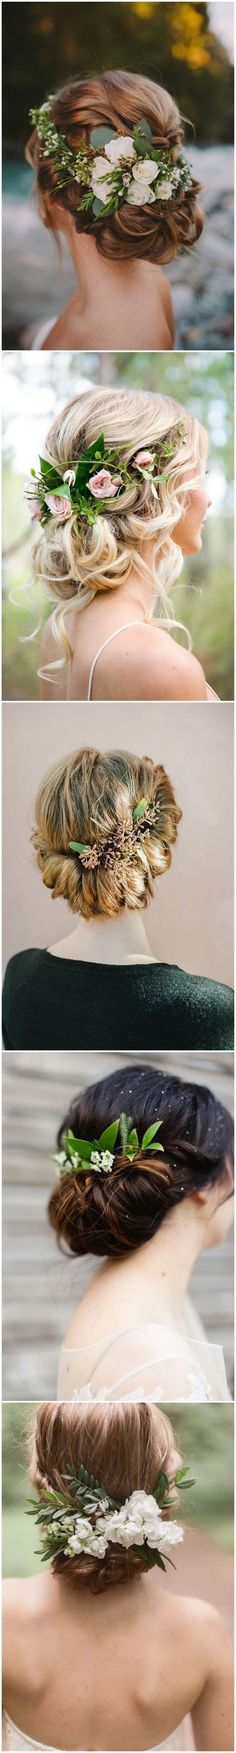 Wedding Hairstyles » 18 Wedding Updo Hairstyles with Greenery Decorations >> ❤️ See more: http://www.weddinginclude.com/2017/03/wedding-updo-hairstyles-with-greenery-decorations/ #weddingdecoration #weddinghairstyles